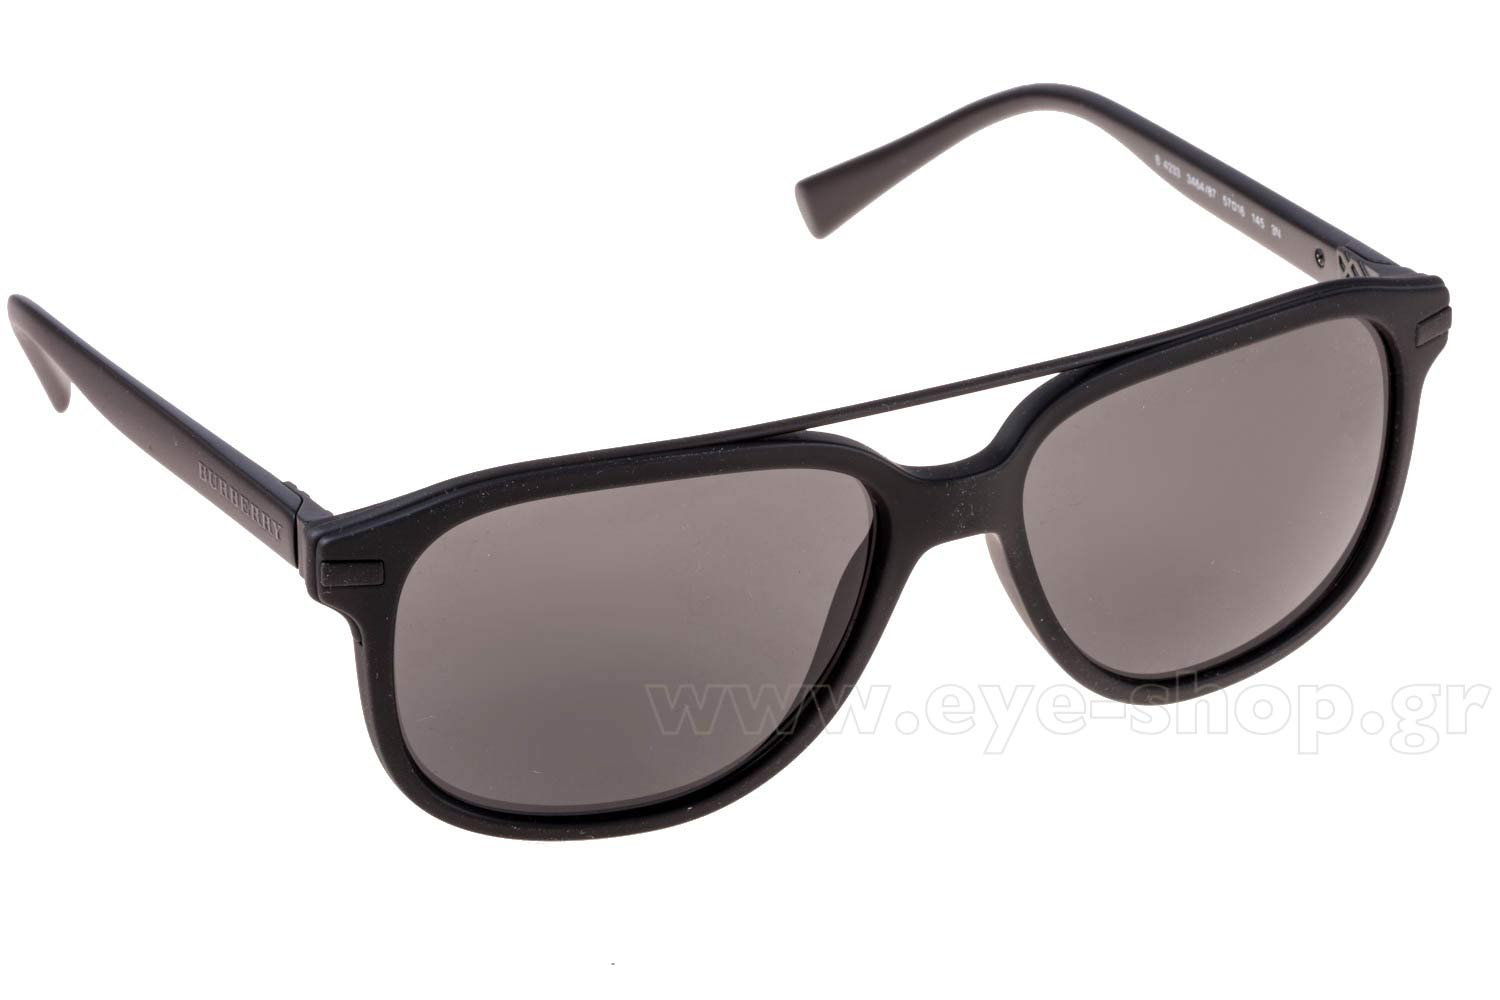 burberry men glasses rdcg  Extreme Magnification Eye-Shop Add to Cart Sunglasses Burberry 4233 346487